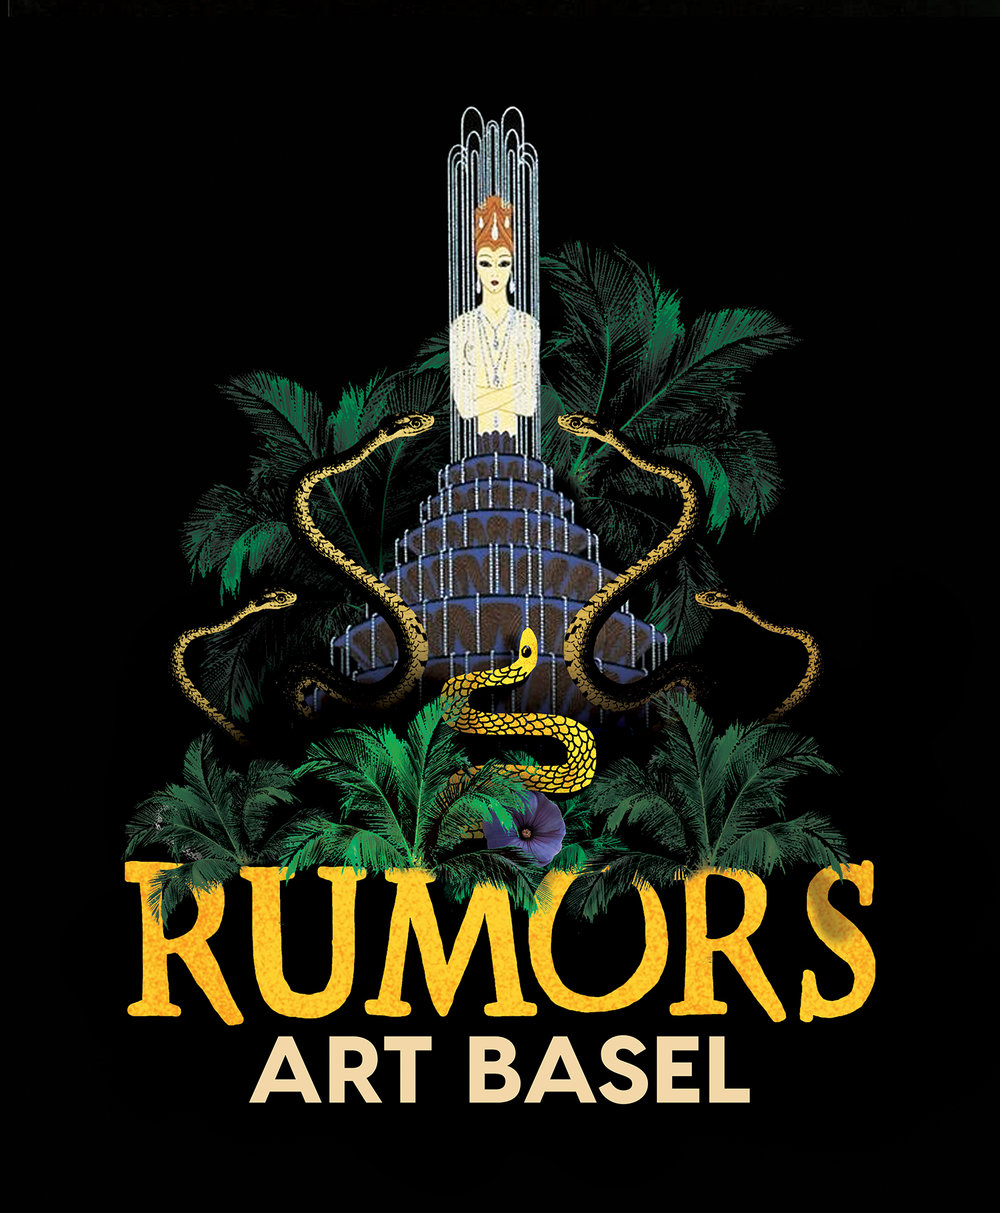 Rumors-Art-Basel-'17.jpg